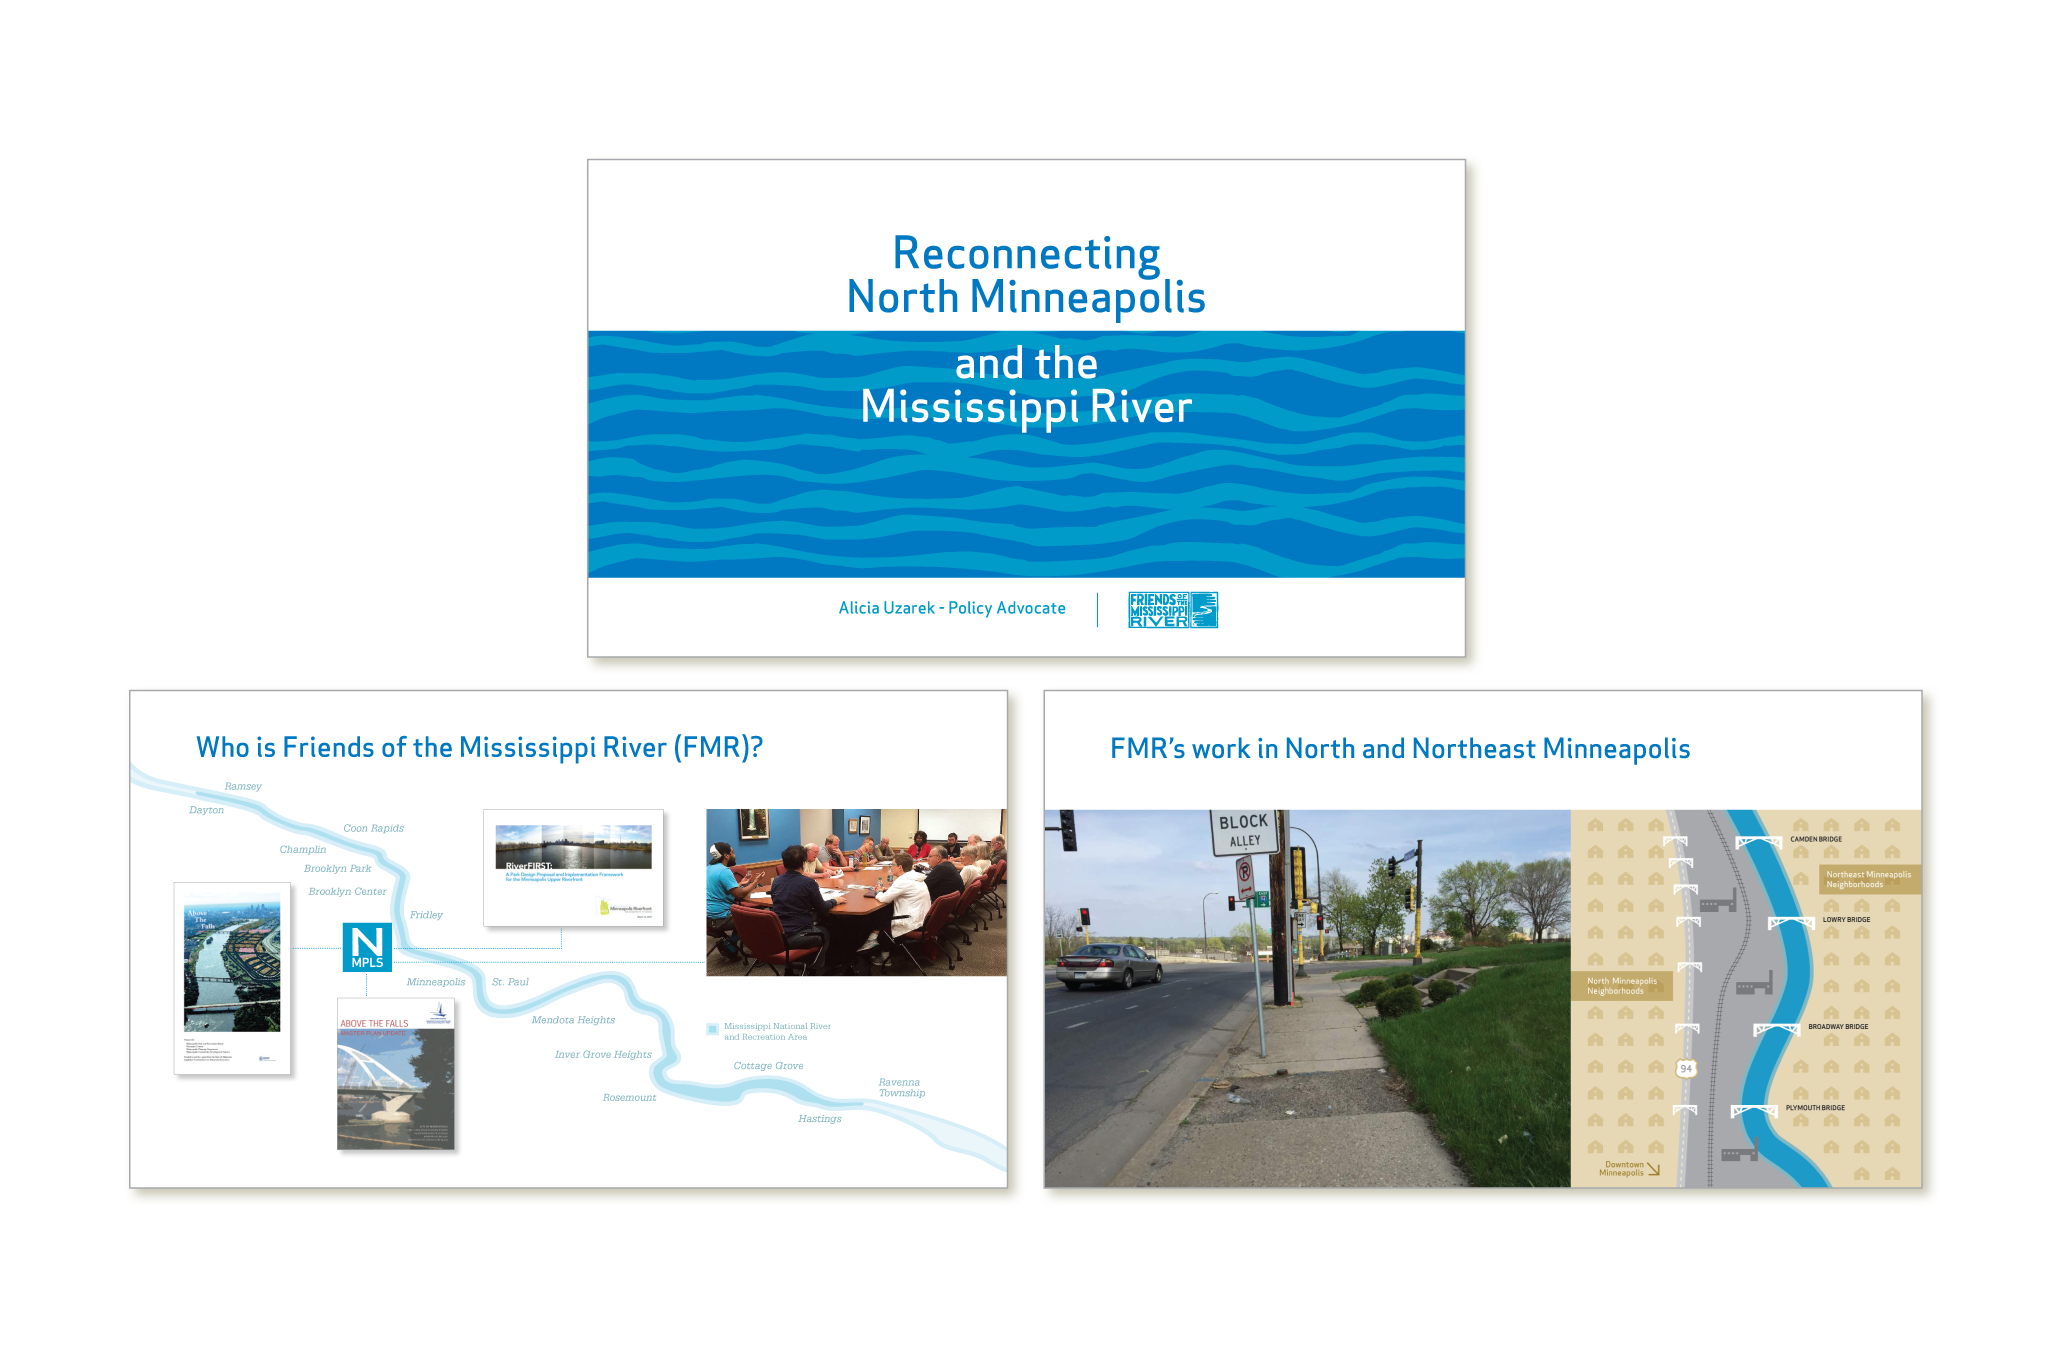 Friends of the Mississippi River powerpoint presentation